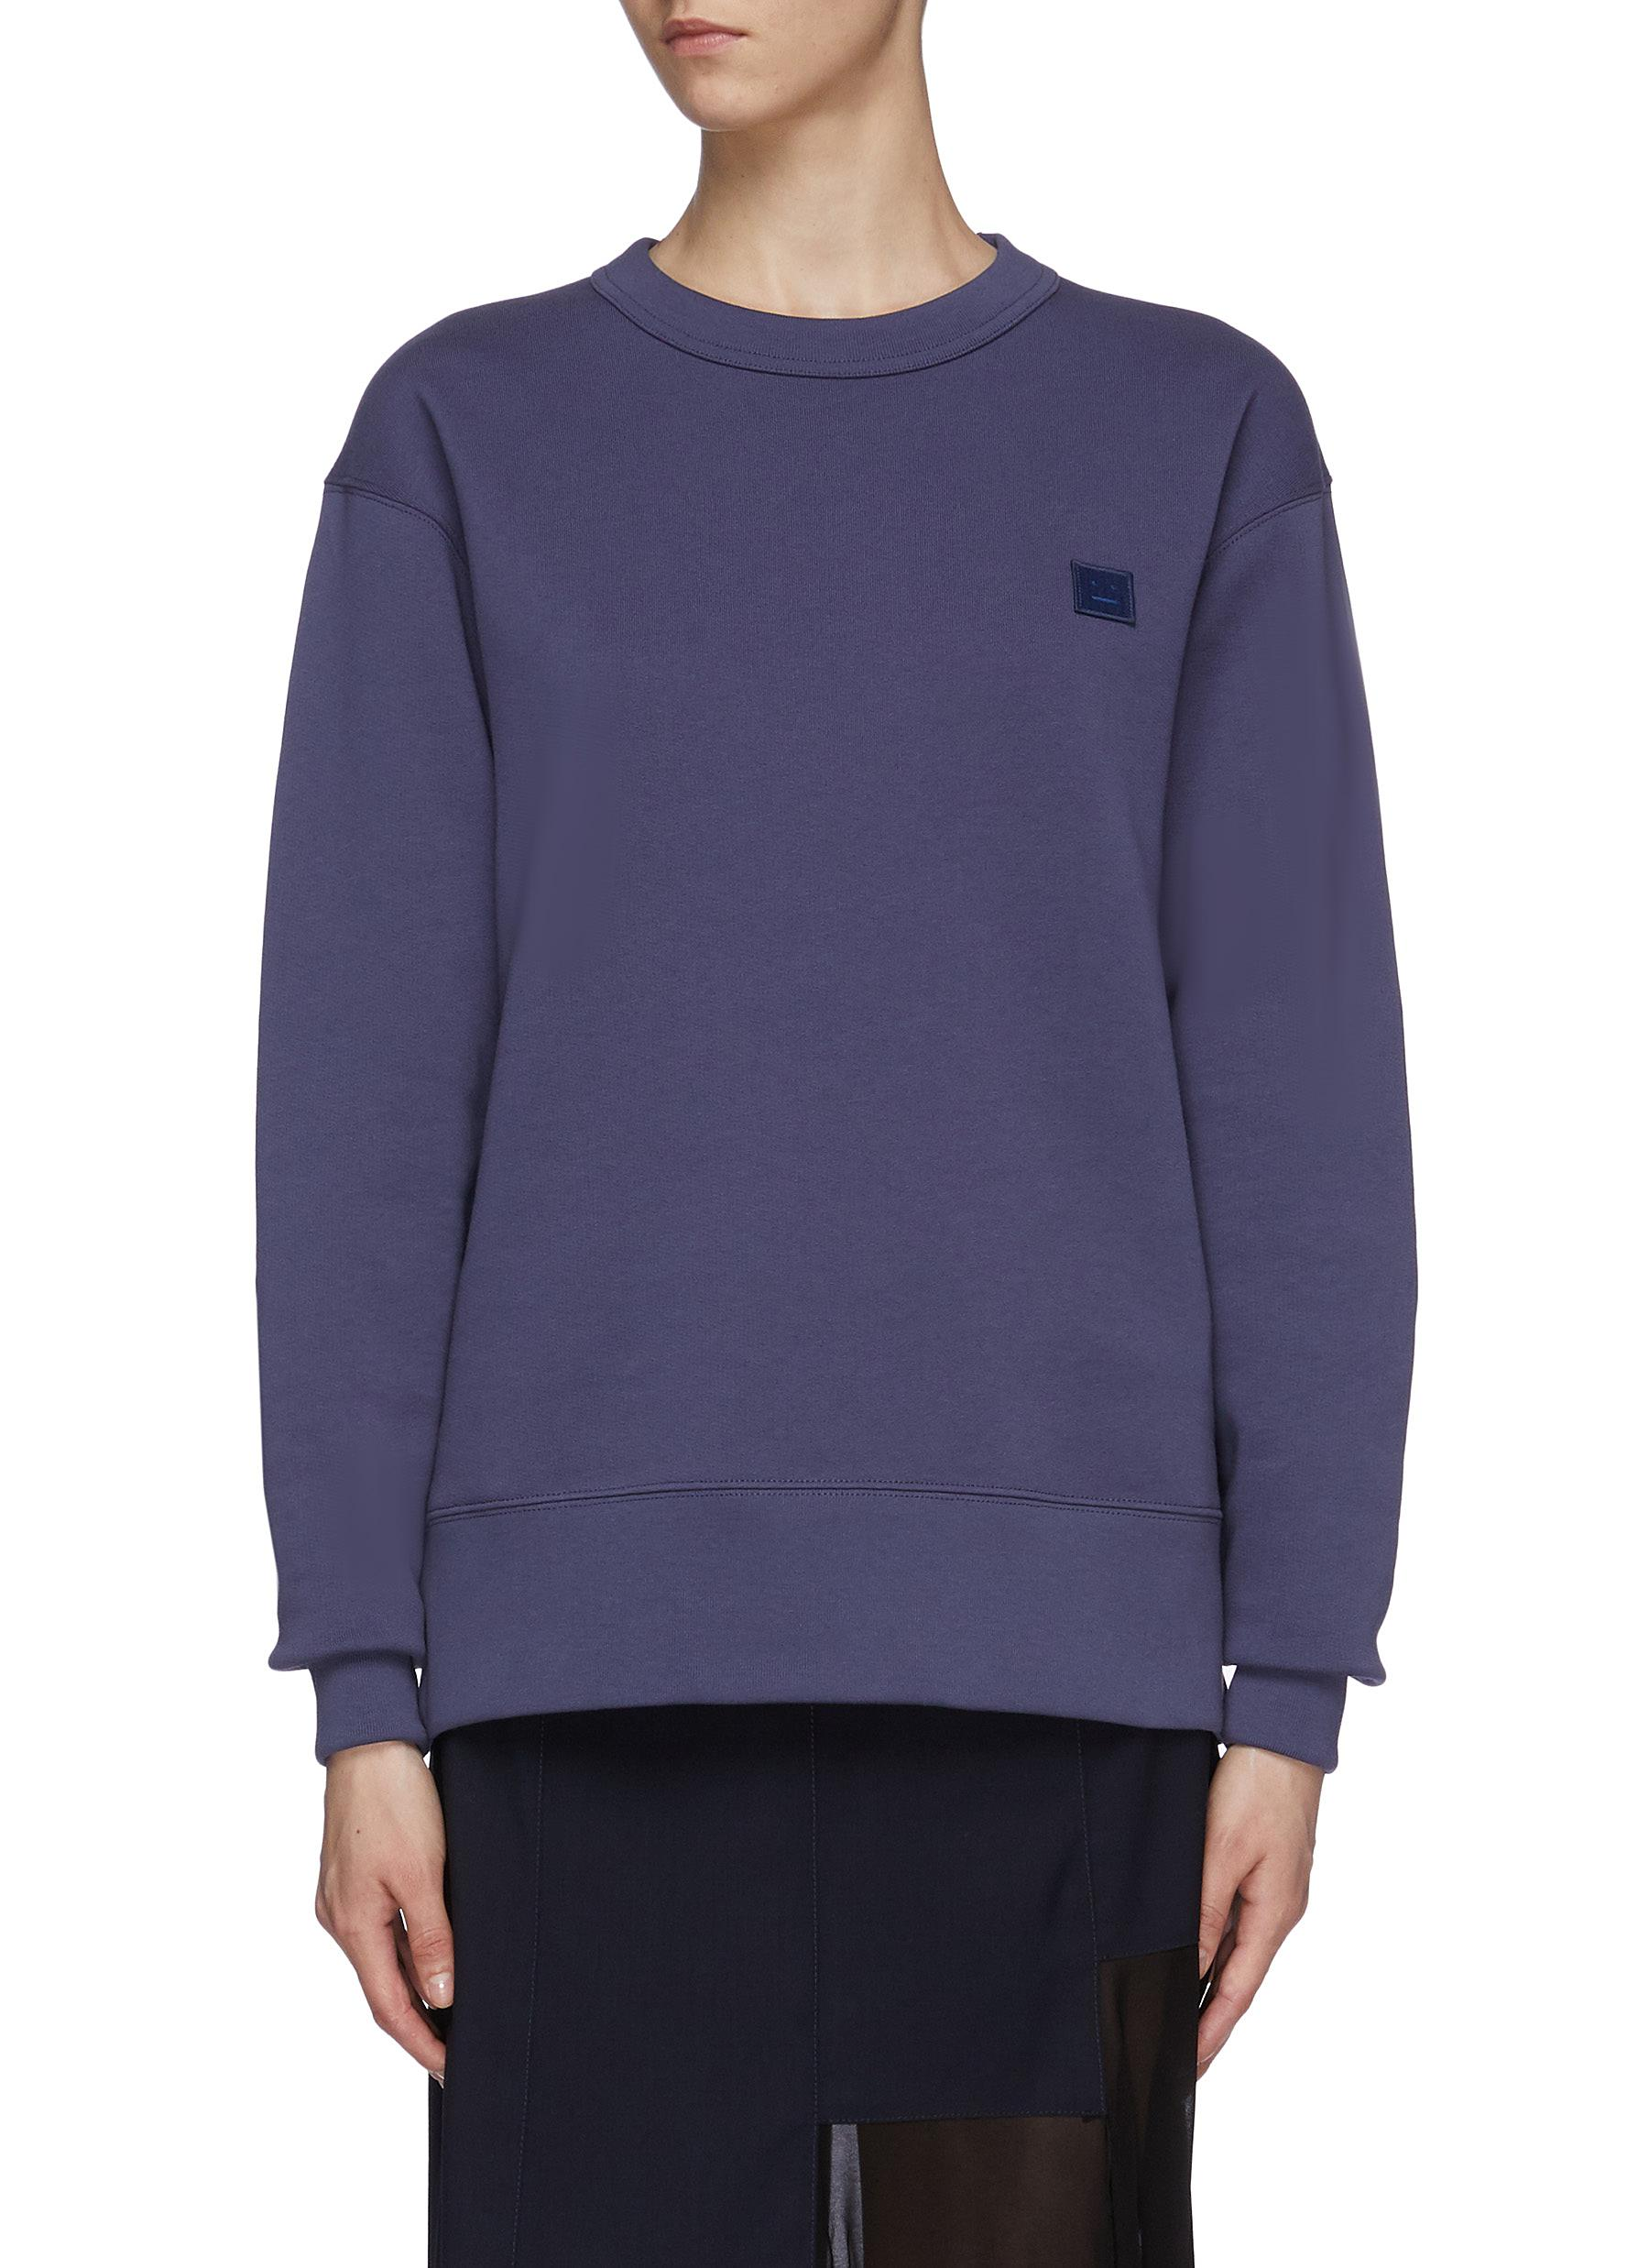 Face patch sweatshirt by Acne Studios